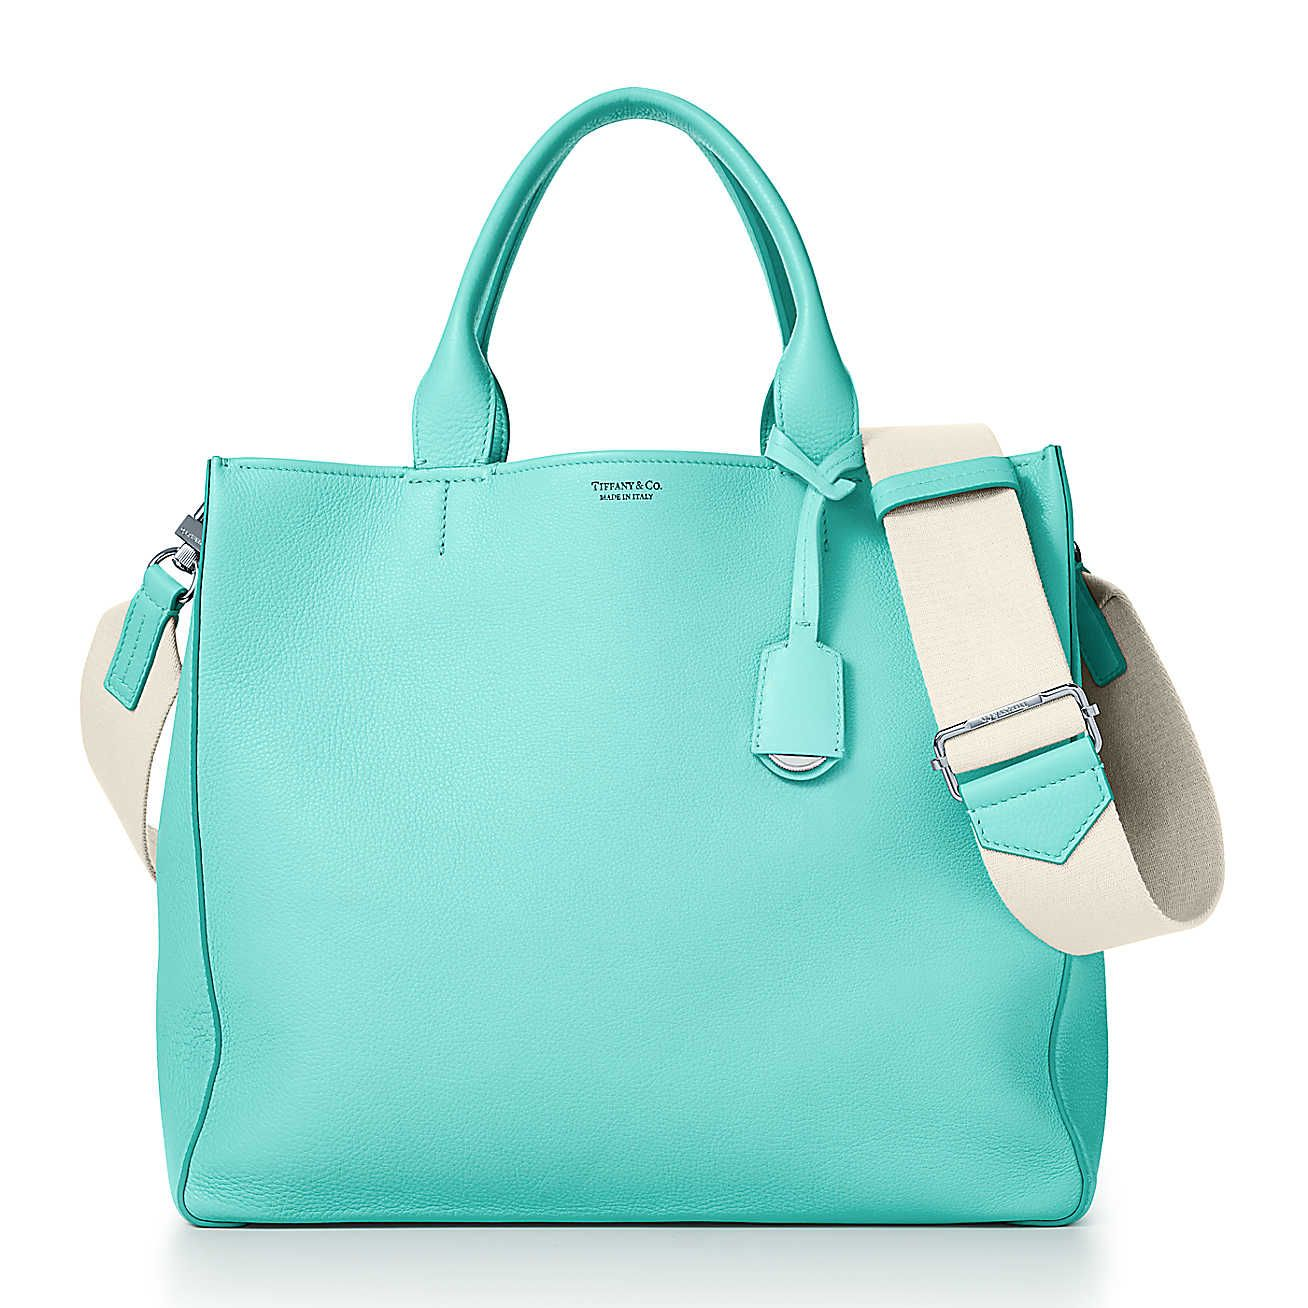 Color Block womens tote in off-white and Tiffany Blue grain calfskin leather Tiffany & Co. xrA48k